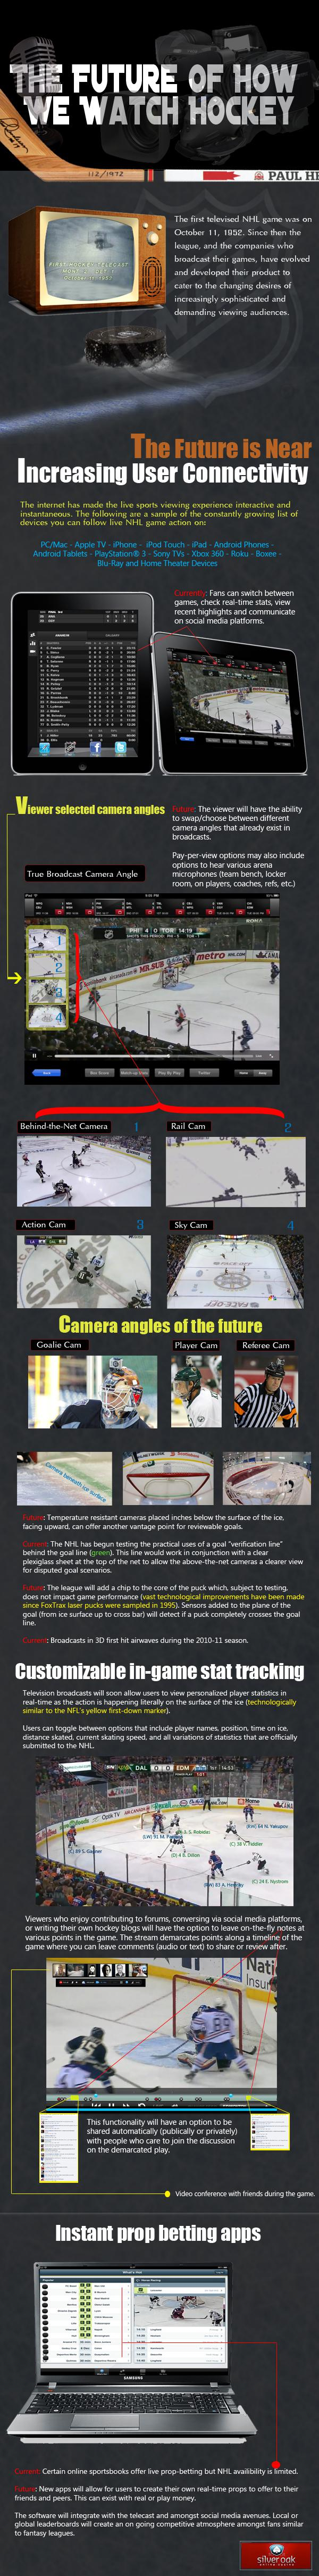 The Future of Hockey Broadcasting